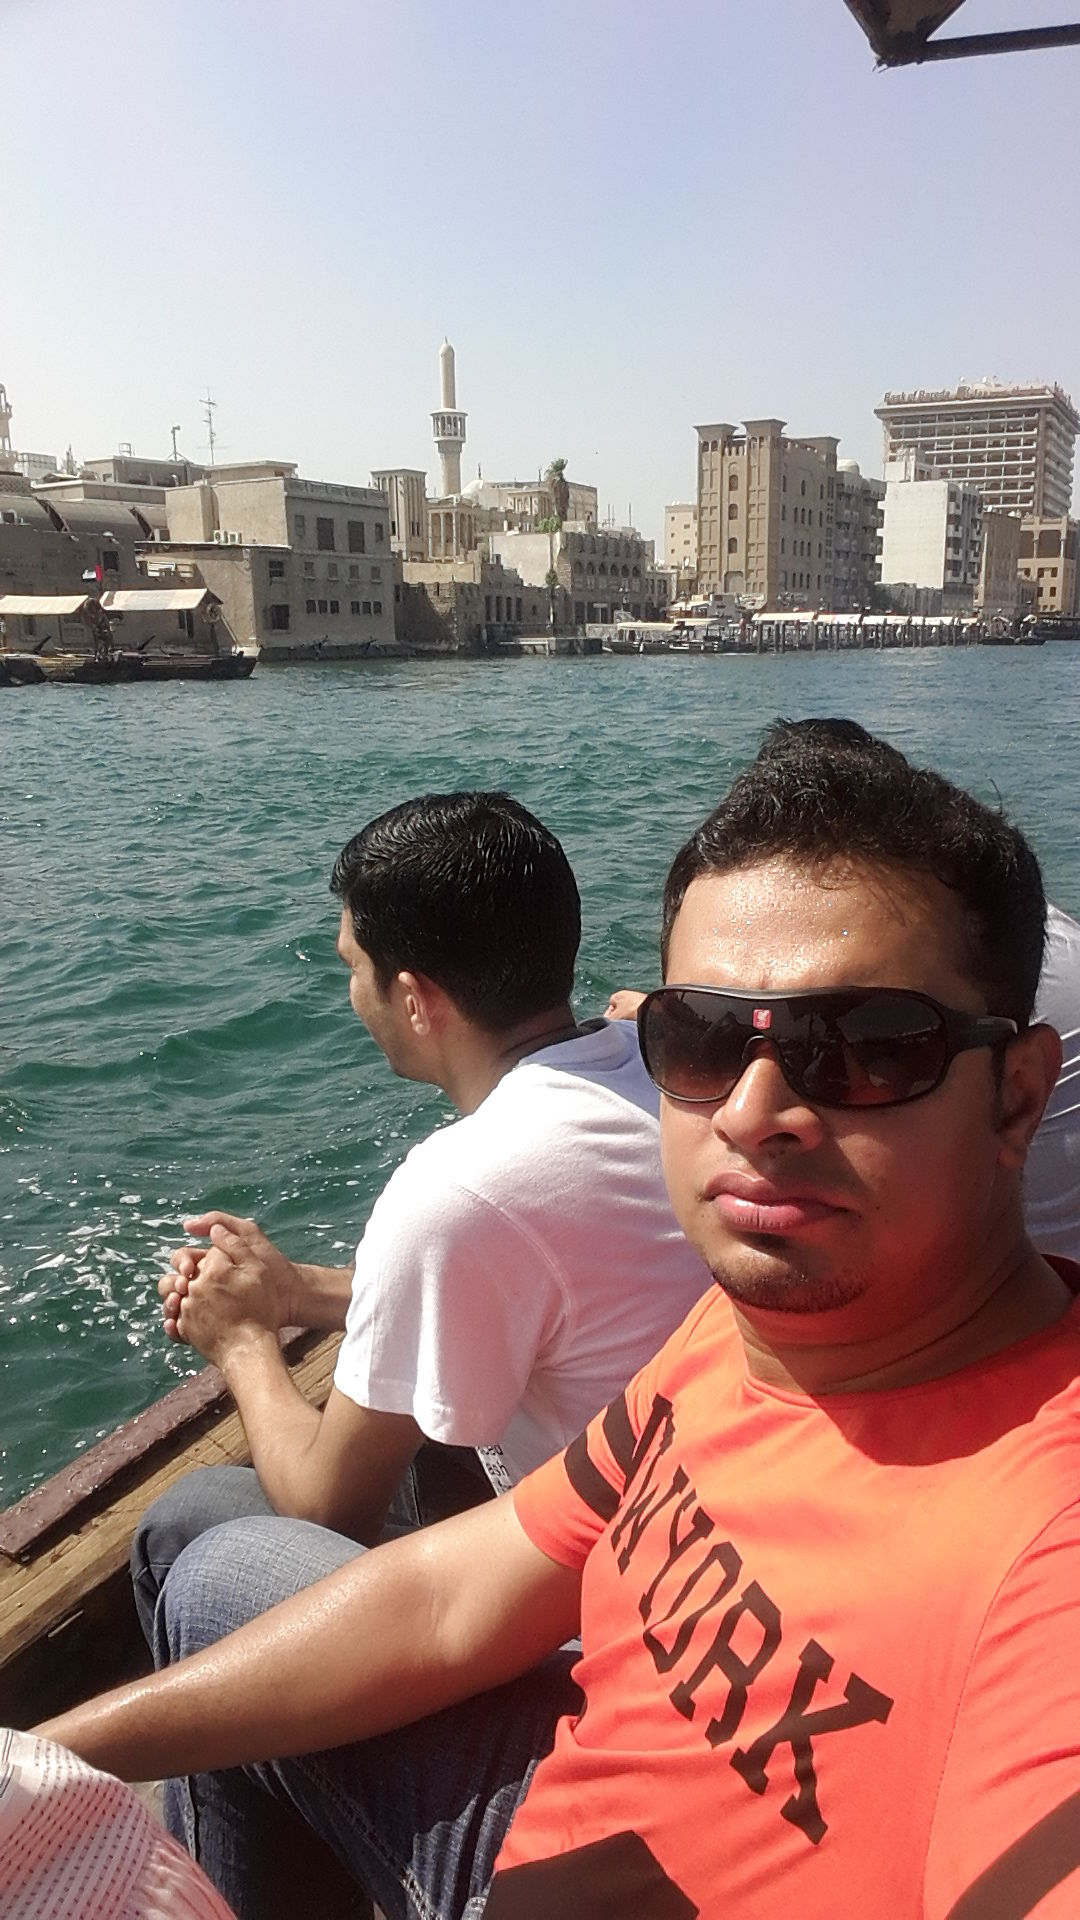 Photo of Dubai Creek - Dubai - United Arab Emirates By Mohamed Zaheen T